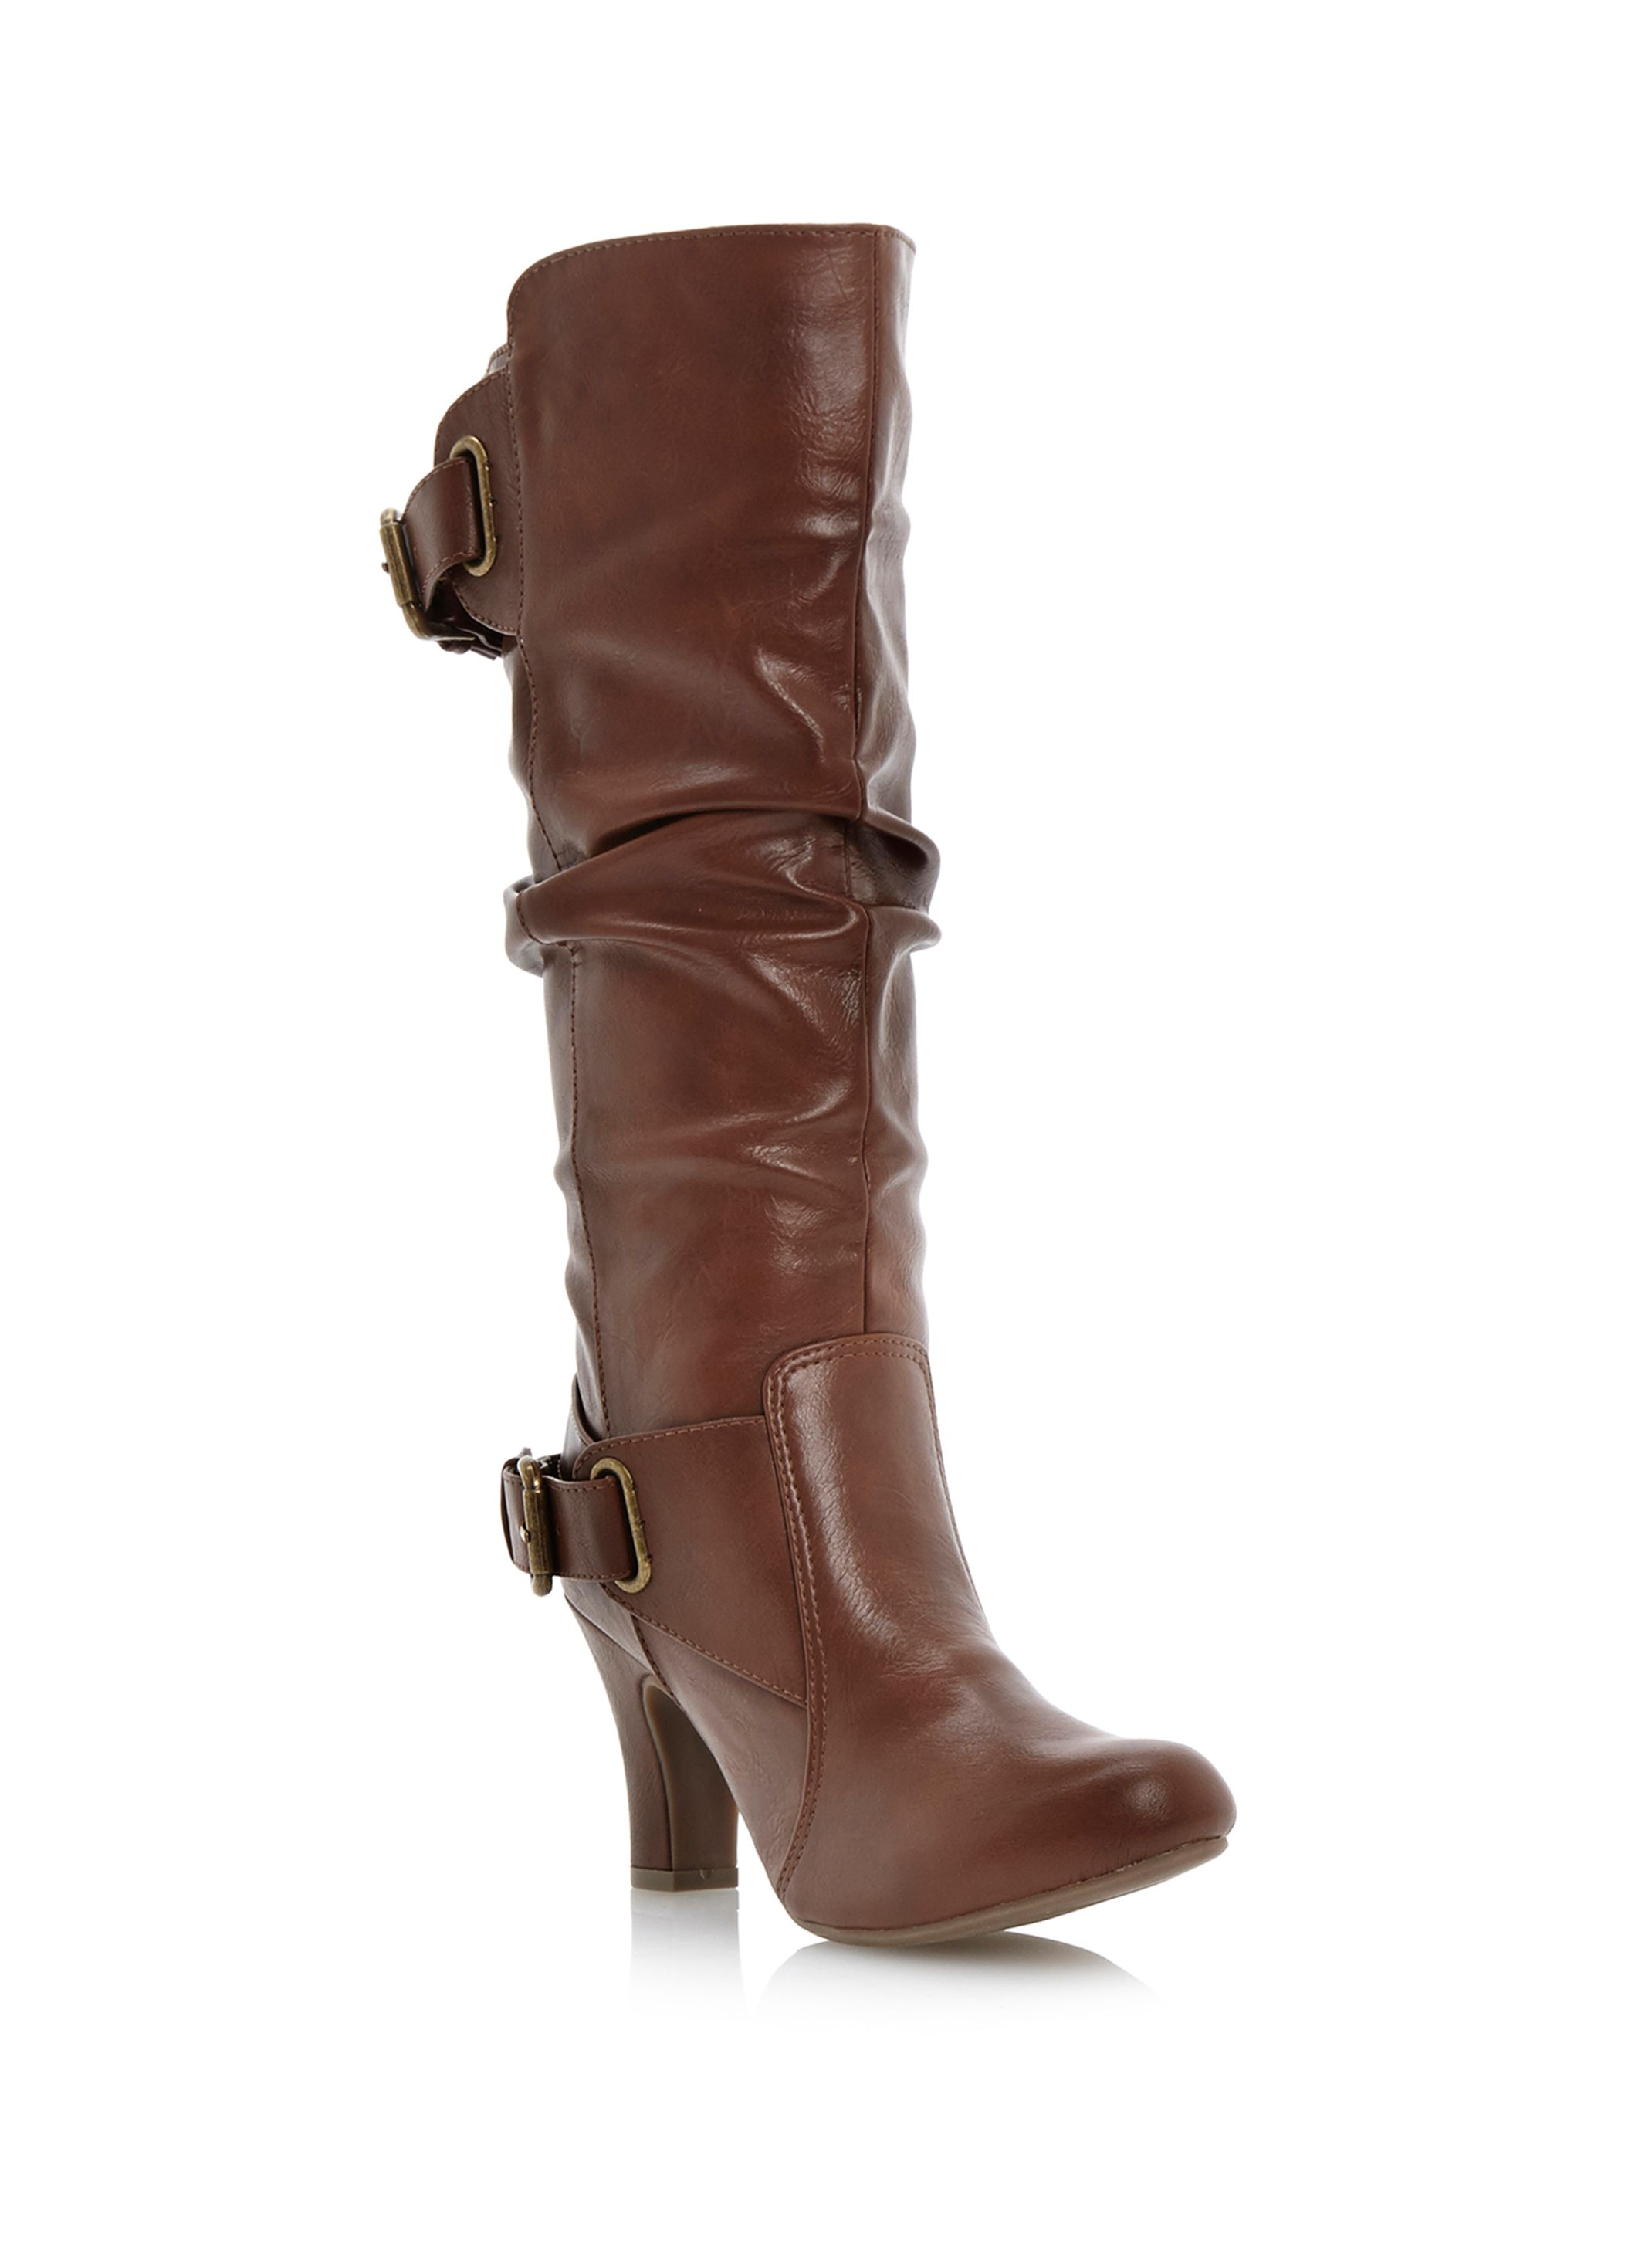 Poach slouch high leg boots